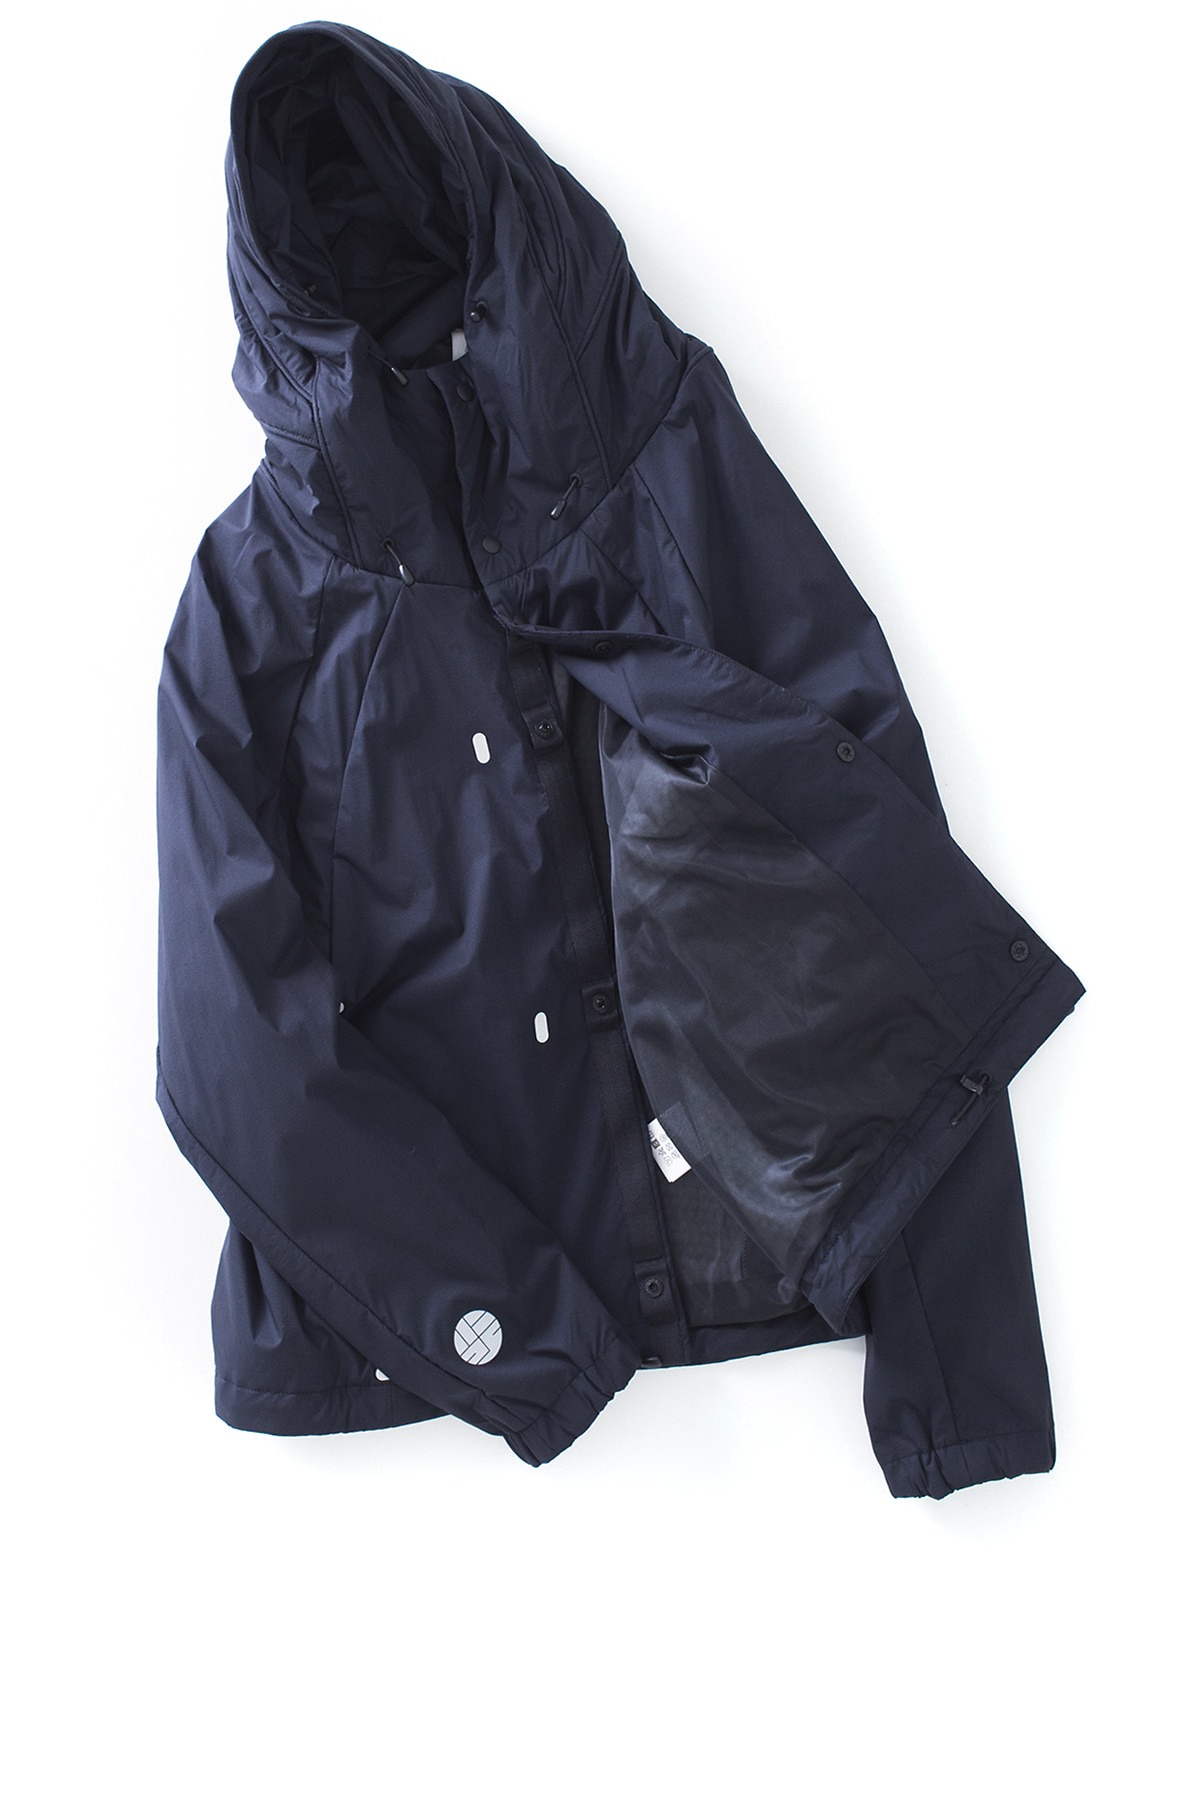 alk phenix : Dome Poncho / Hyper Stretch LT X α (Navy)